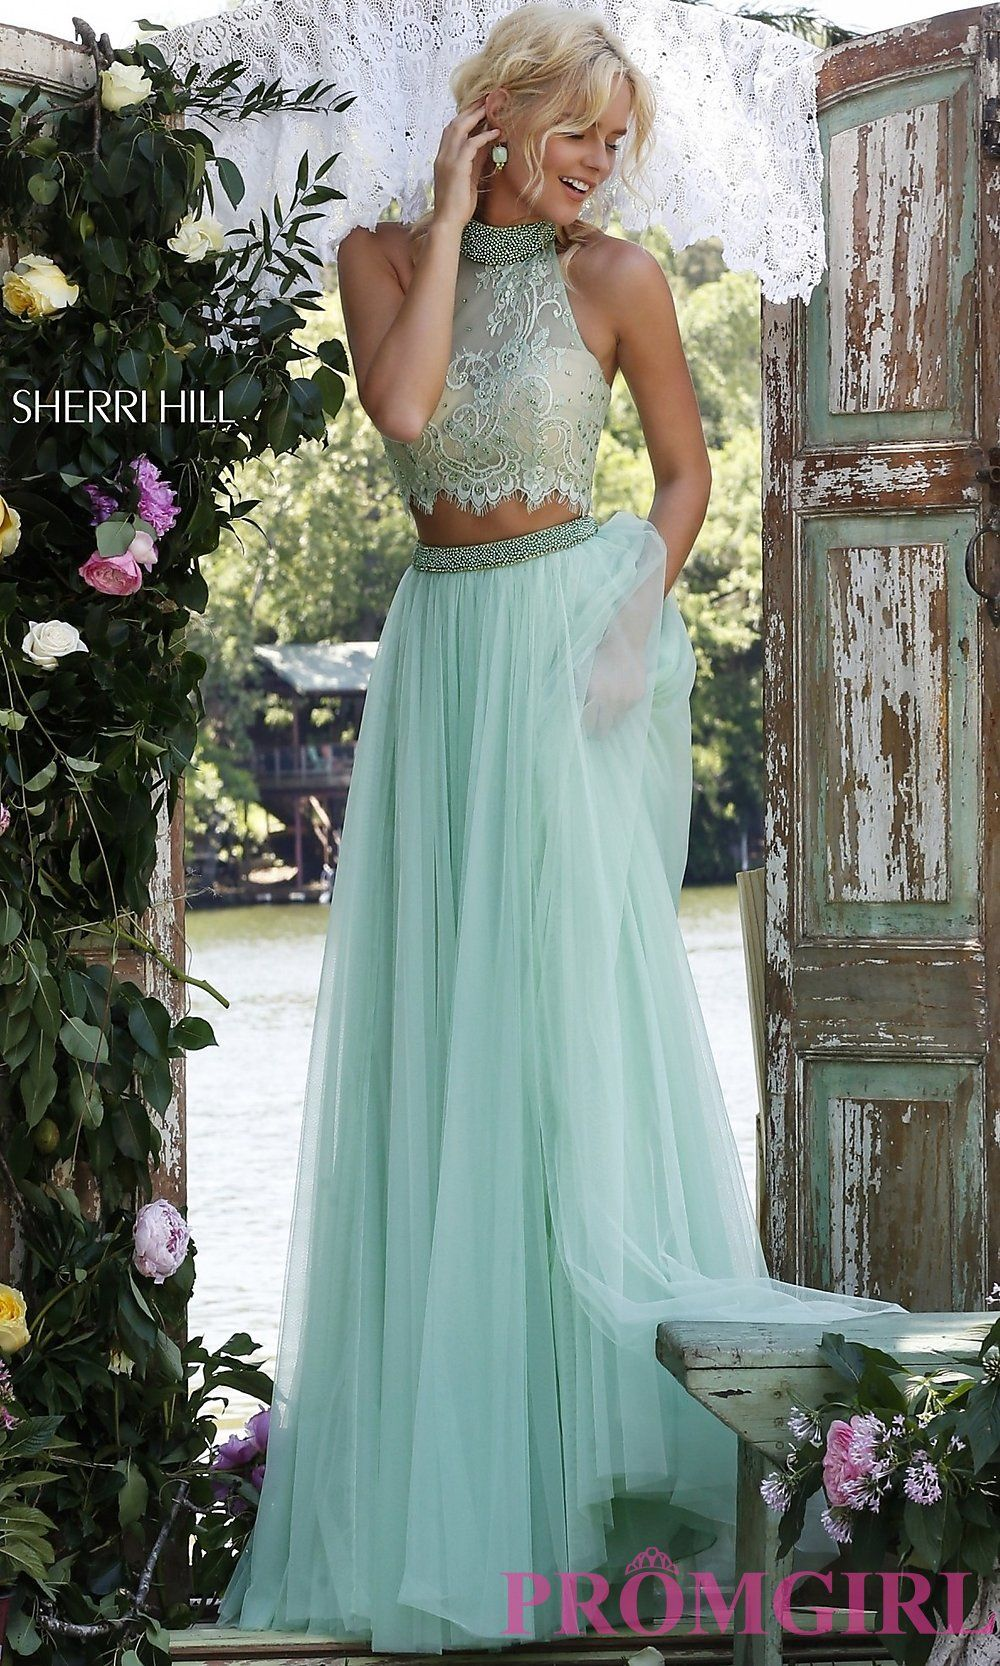 Light green lace dress  High Neck Sherri Hill Two Piece Prom Dress with Lace Top in Light